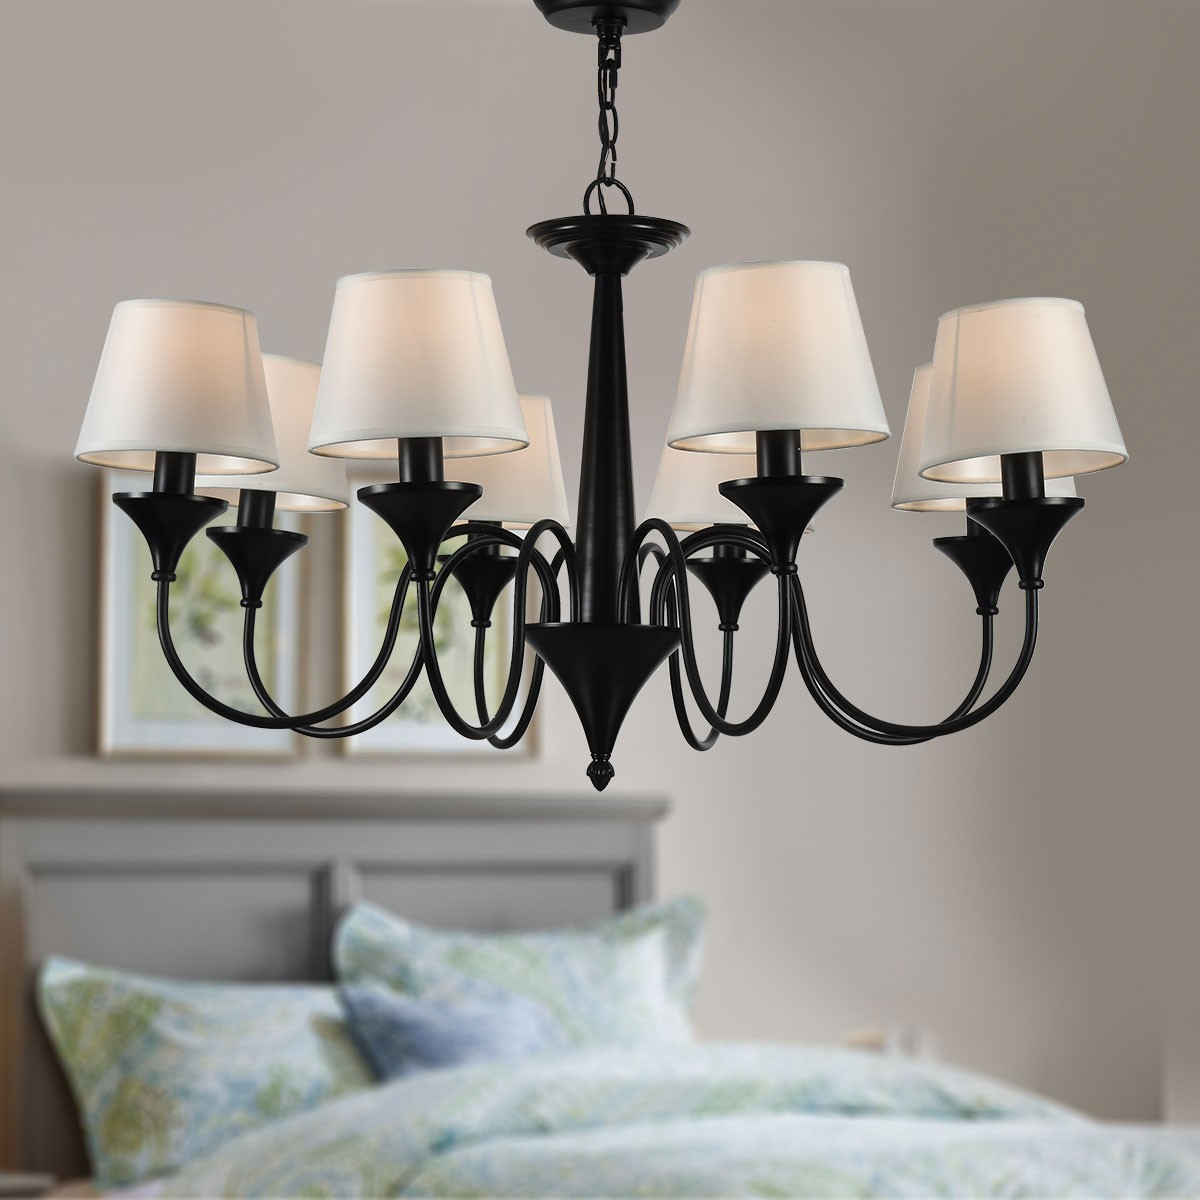 8 Light Black Wrought Iron Chandelier With Cloth Shades Dk 2012 8 Decoraport Canada